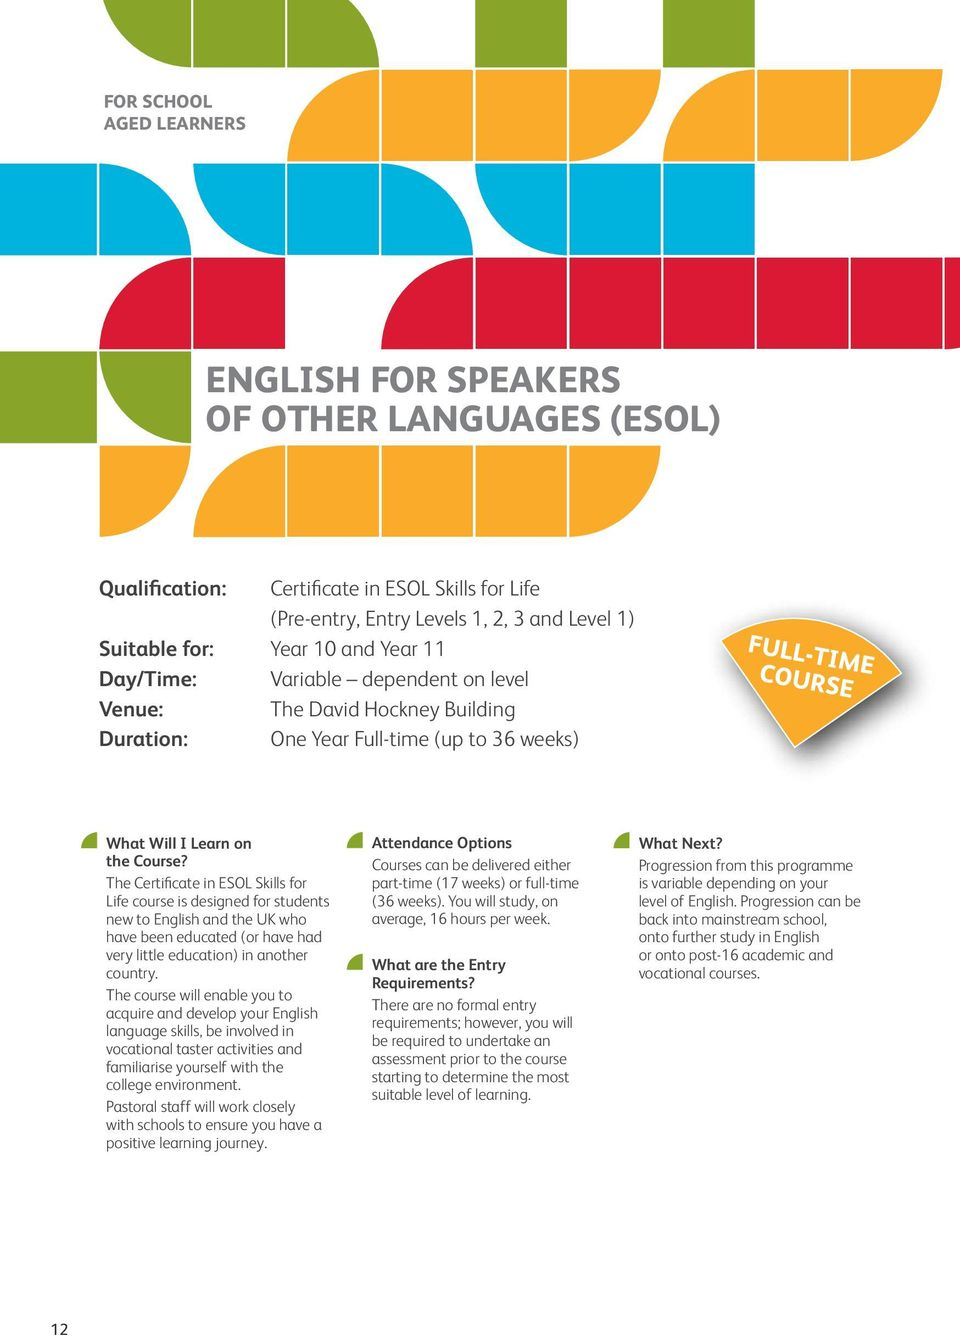 The Certificate in ESOL Skills for Life course is designed for students new to English and the UK who have been educated (or have had very little education) in another country.